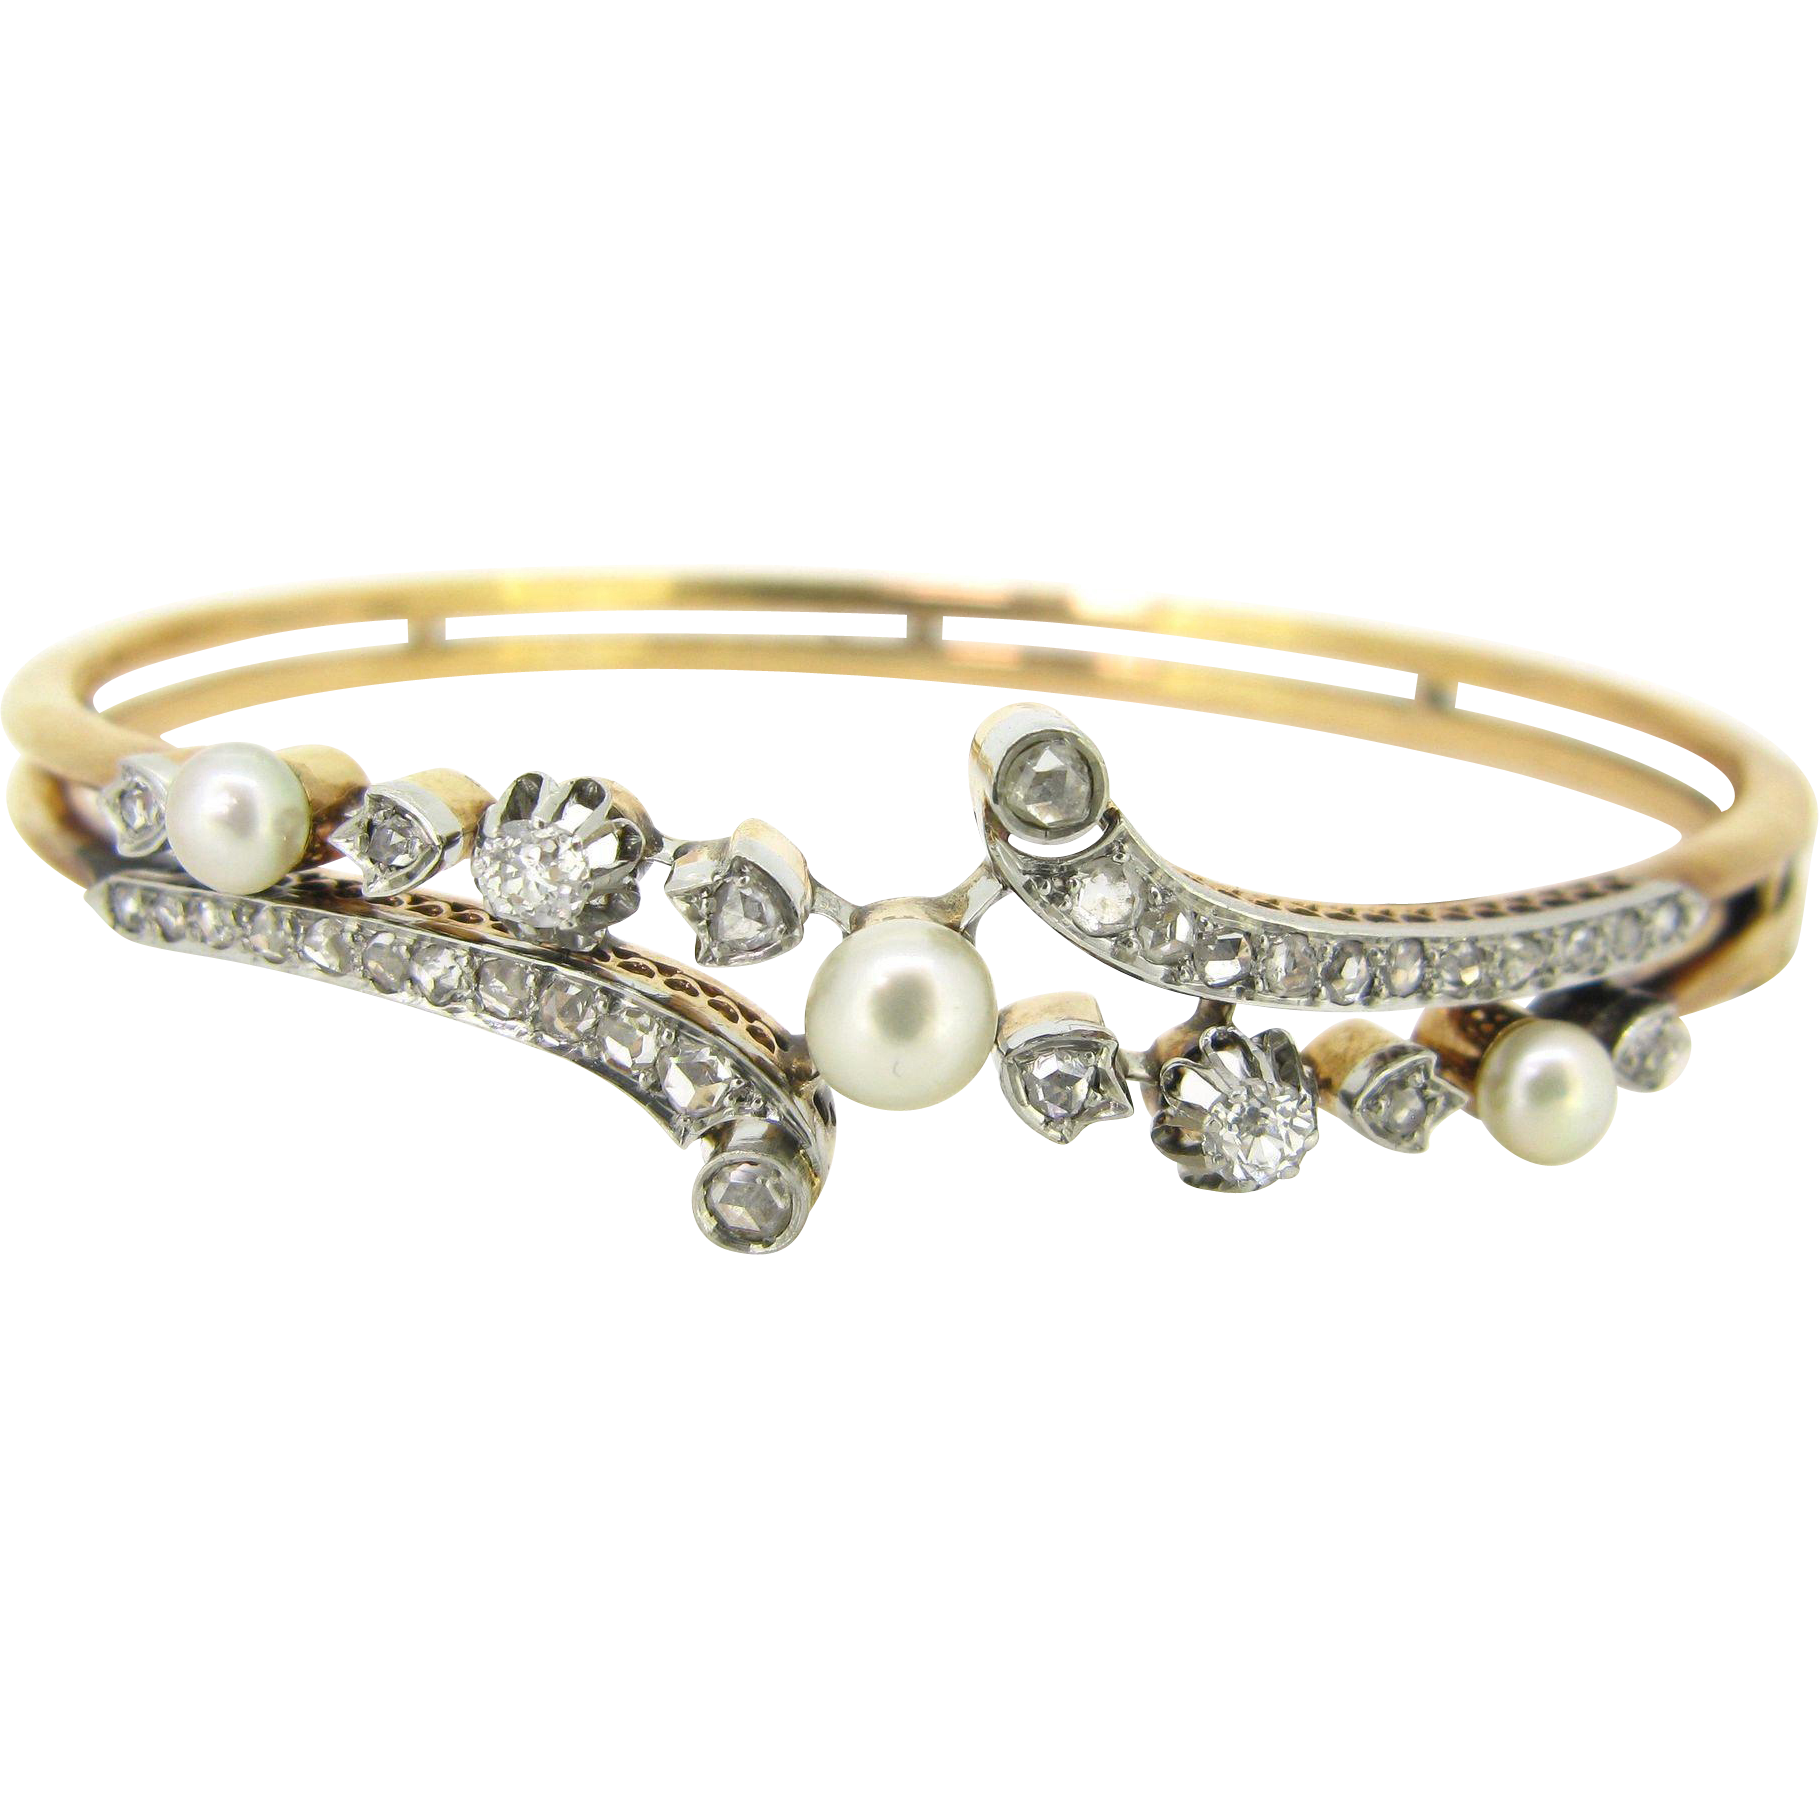 Antique French Bangle, Fine pearls and diamonds, 18kt gold and silver, c.1900